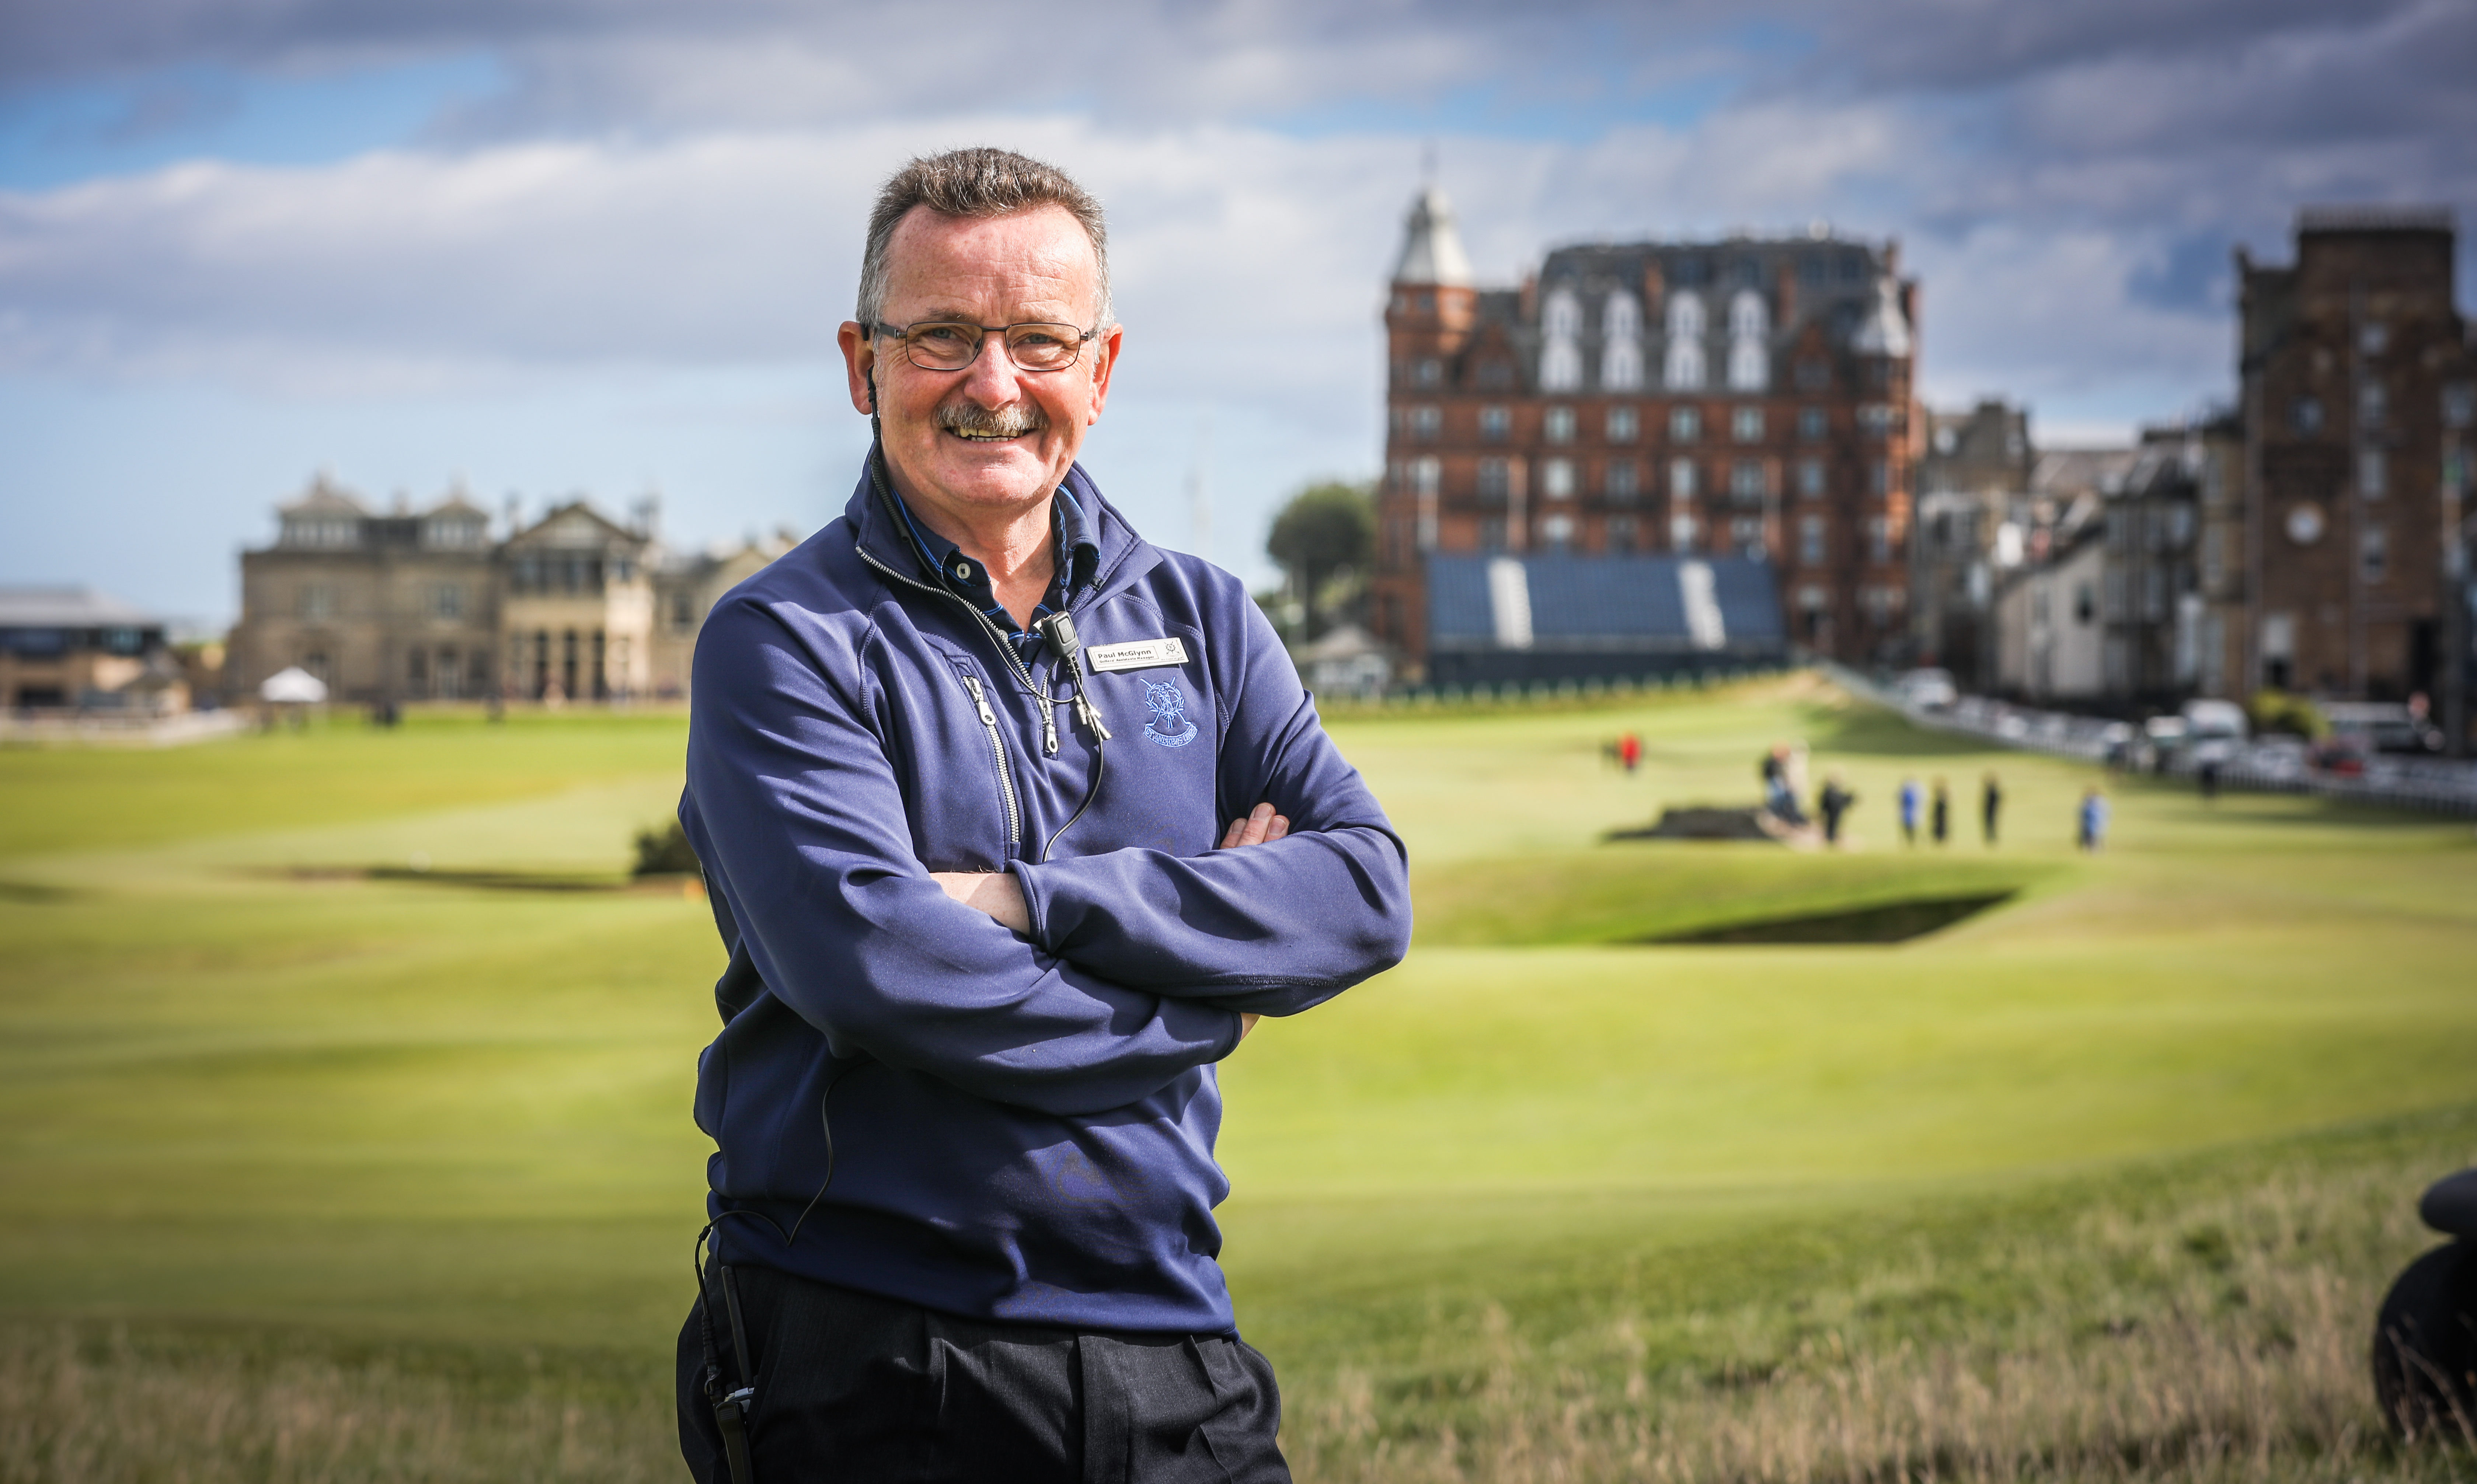 Paul McGlynn is chief marshal at the 2019 Alfred Dunhill Links Championship